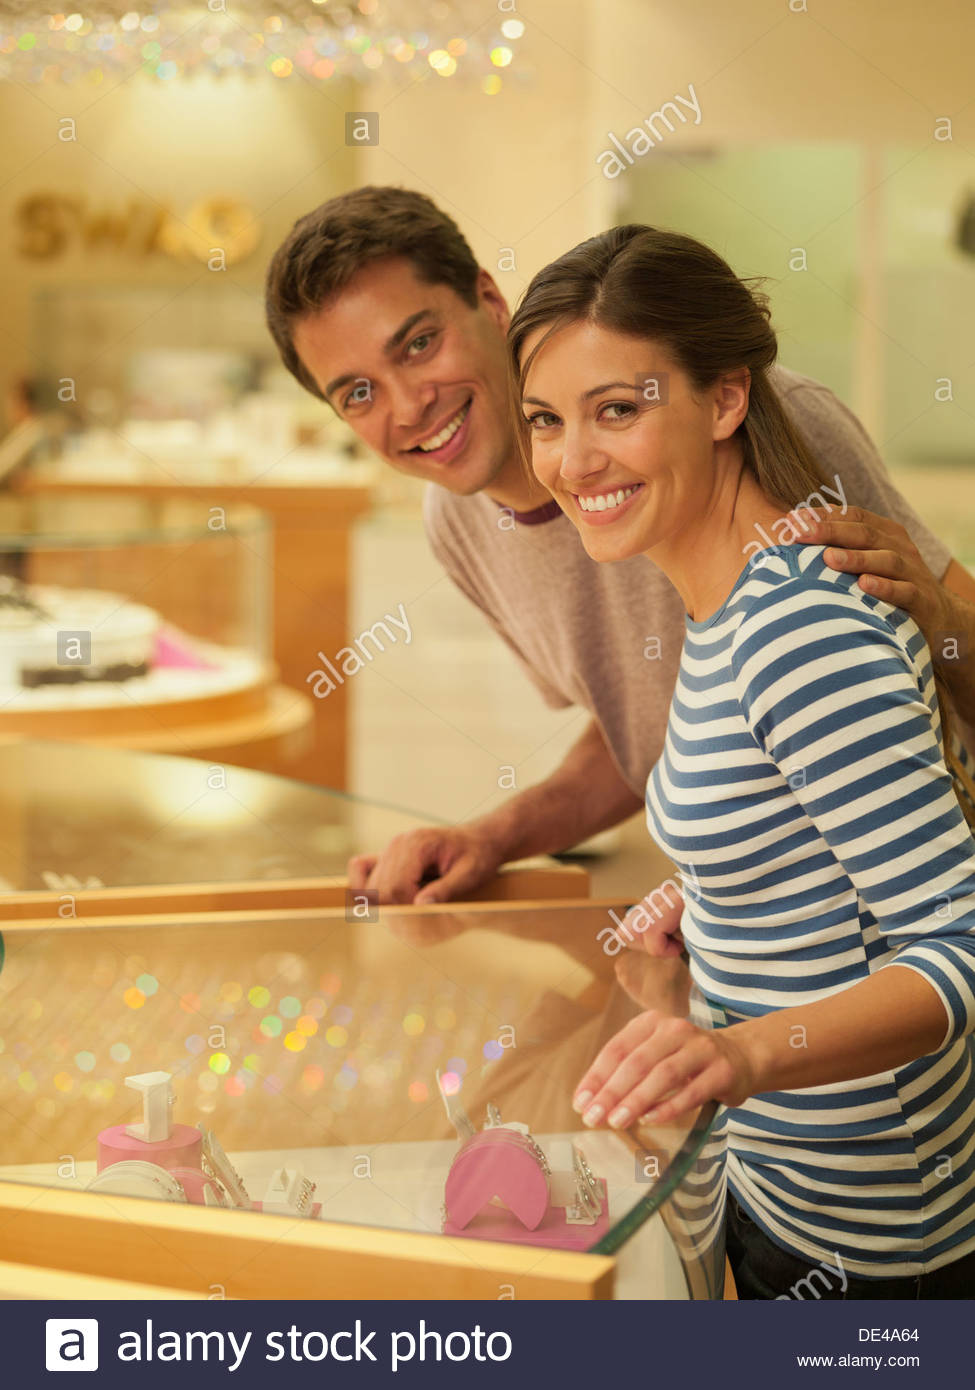 Smiling couple looking at jewelry case - Stock Image